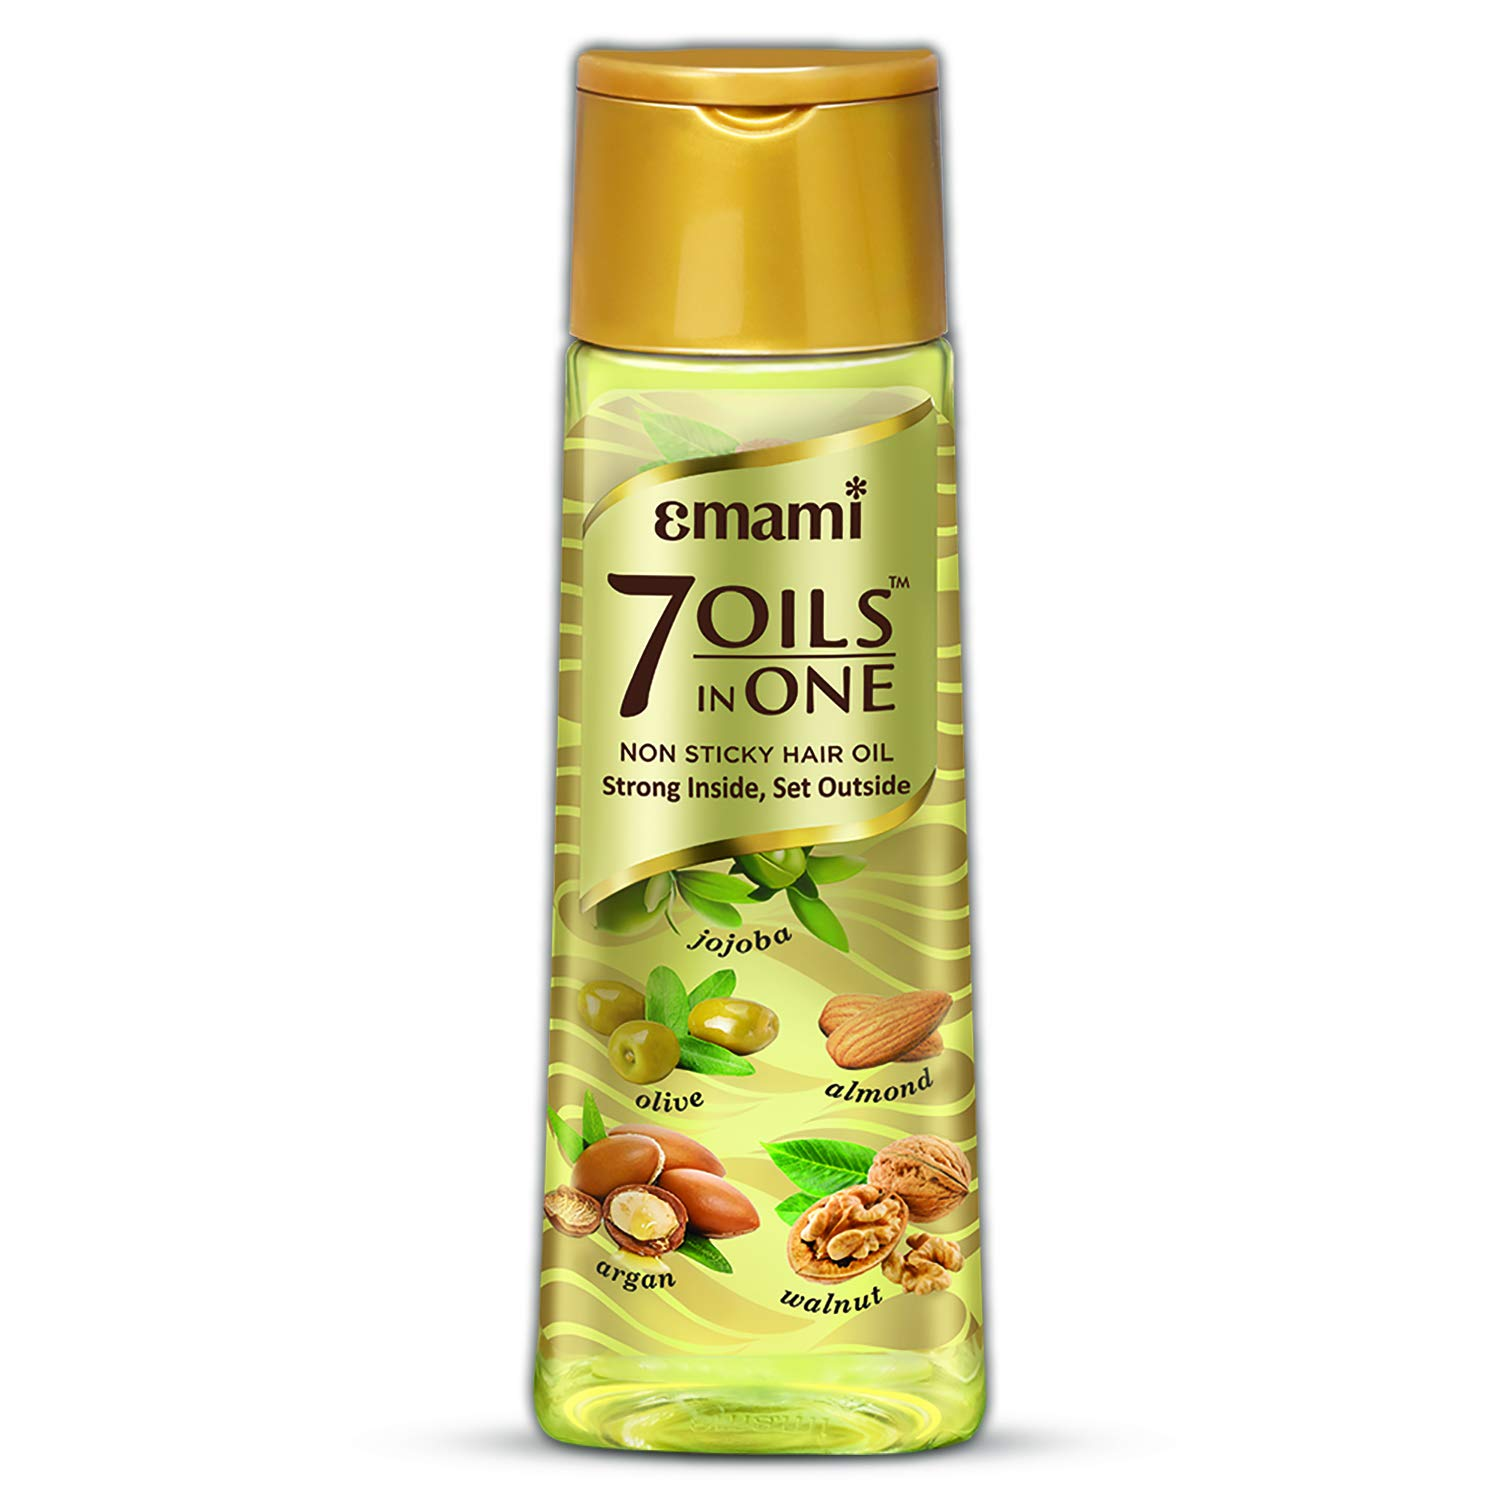 Emami 7 Oils In One Emami 7 Oils In One Non Sticky Hair Oil 500ml